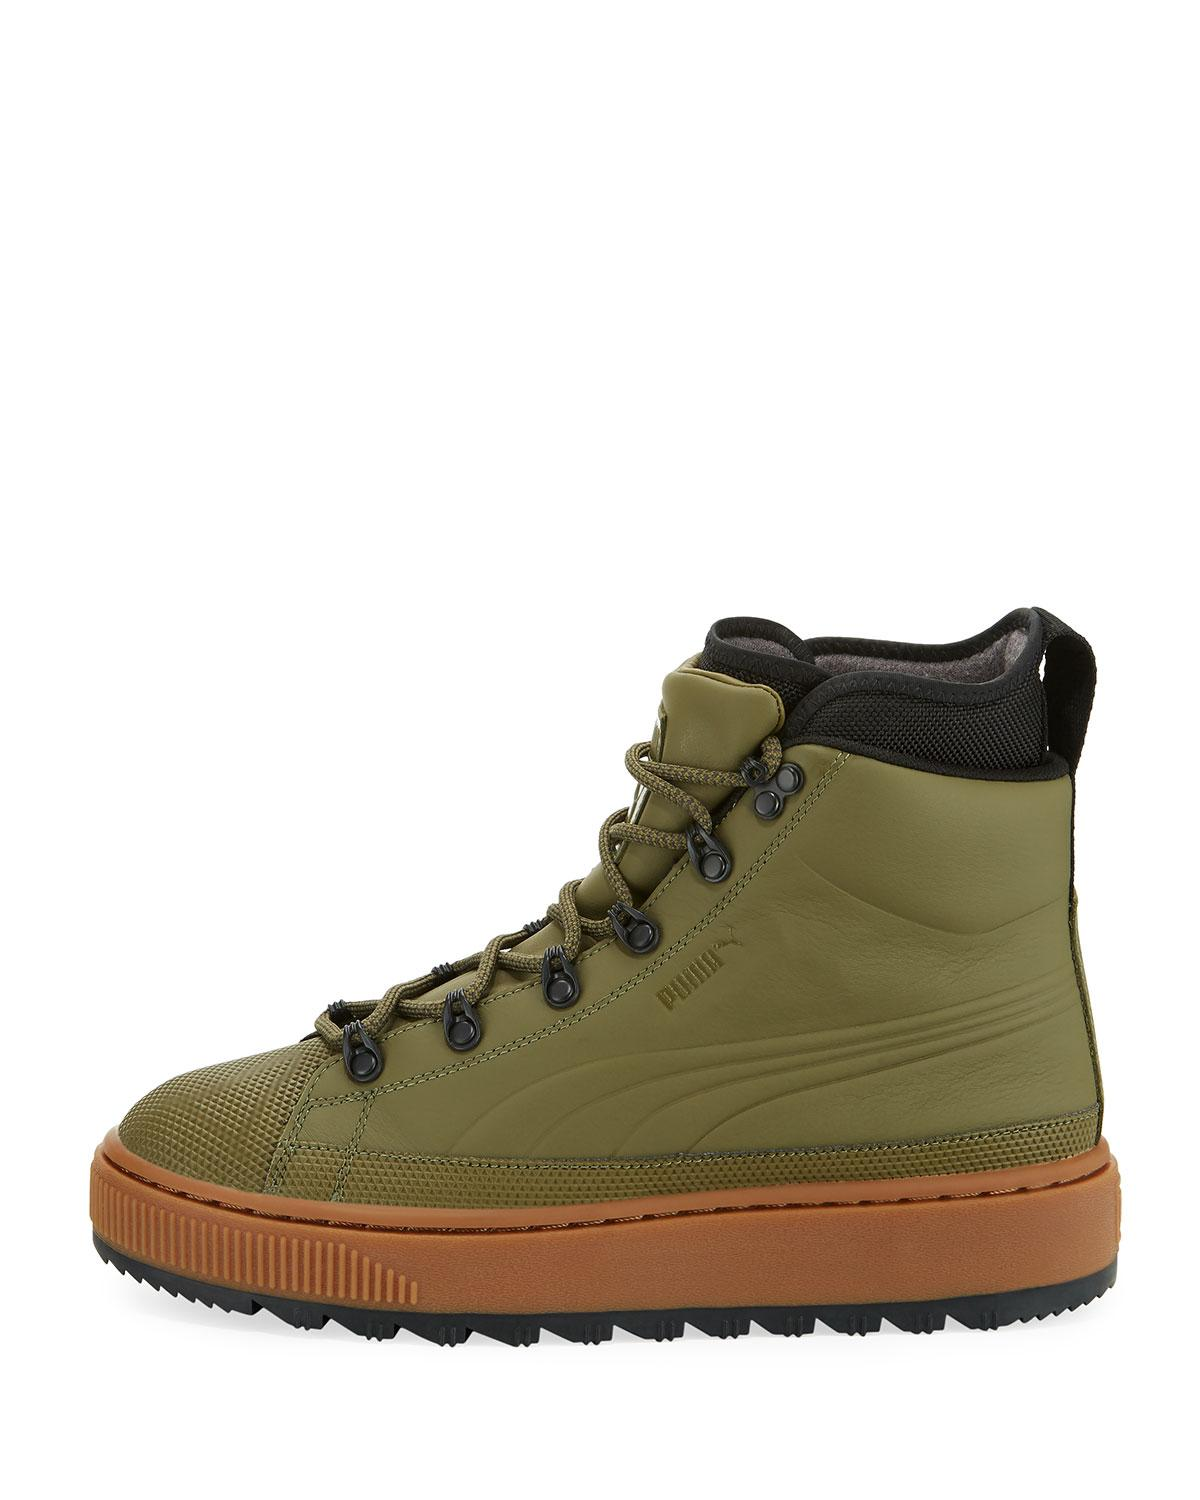 Lyst Puma The Ren Leather Hiking Boot In Green For Men